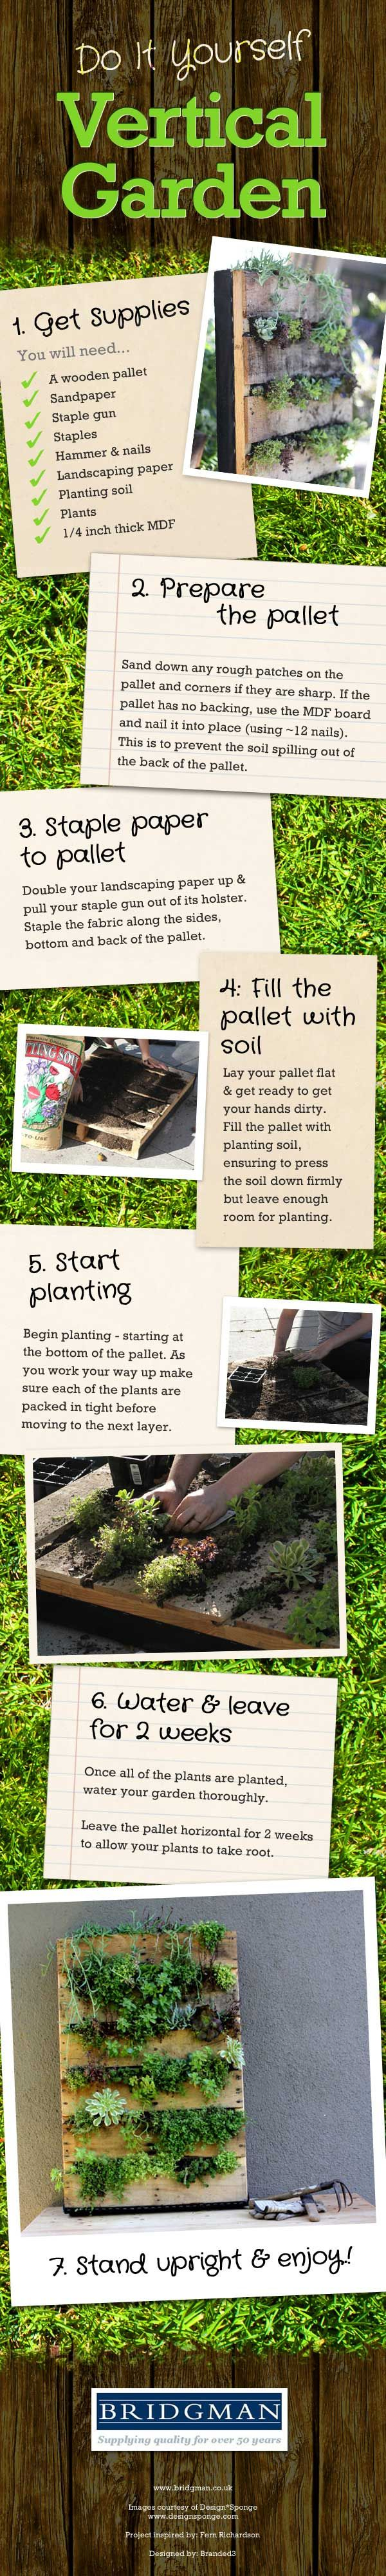 A nice infographic on how to make a vertical garden.